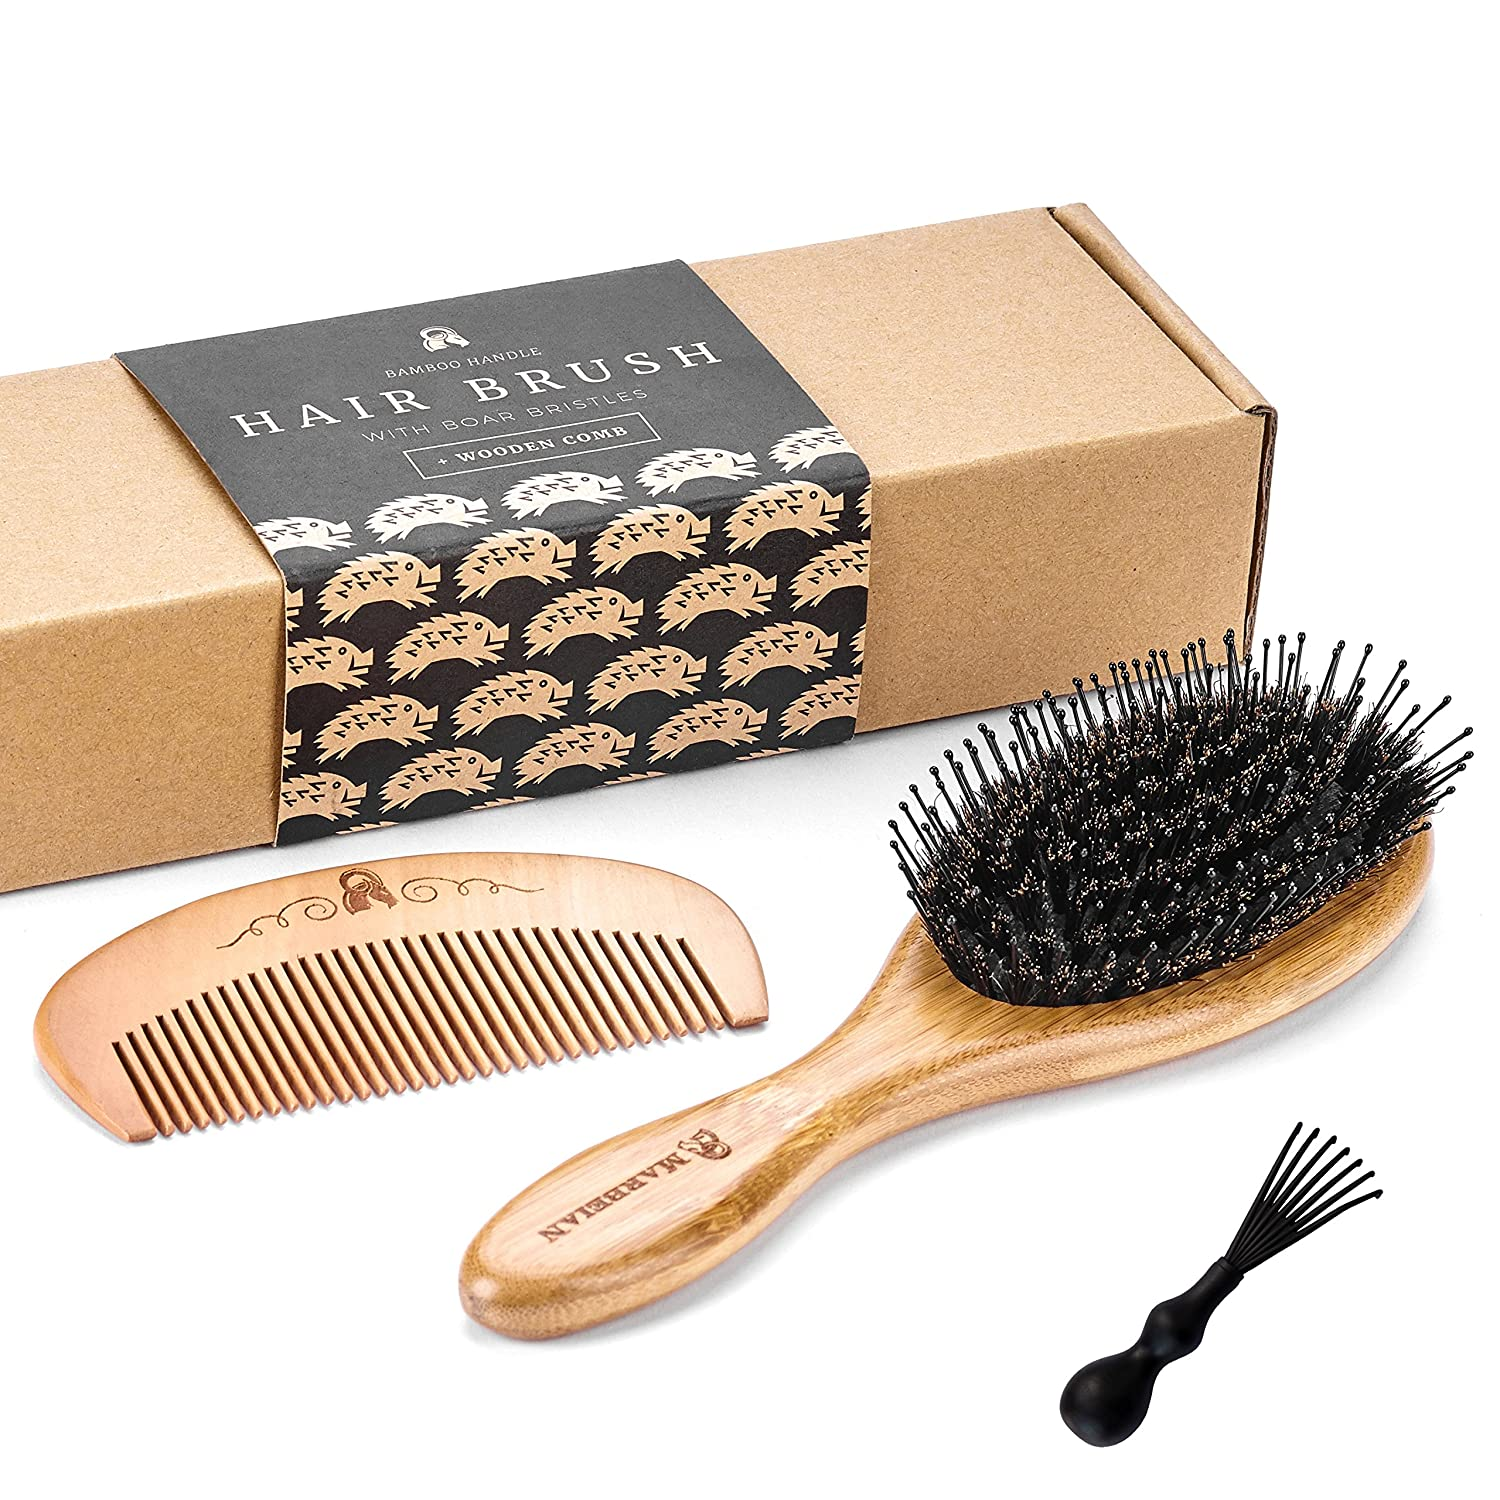 Boar Bristle Hair Brush with Detangle Pins. Makes Hair Shiny and Silky. Comes With a Wooden Comb Marbeian